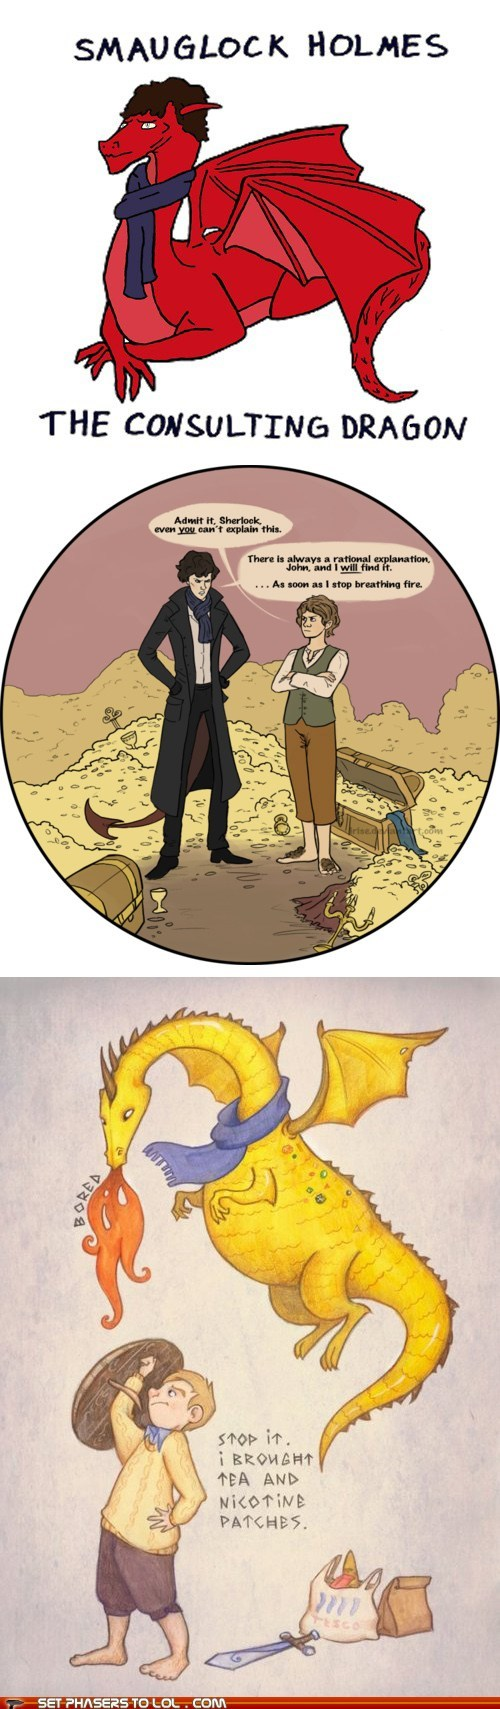 bennedict cumberbatch best of the week Bilbo Baggins detective dragon Fan Art Martin Freeman mashup Sherlock sherlock bbc smaug The Hobbit Watson - 6095627776